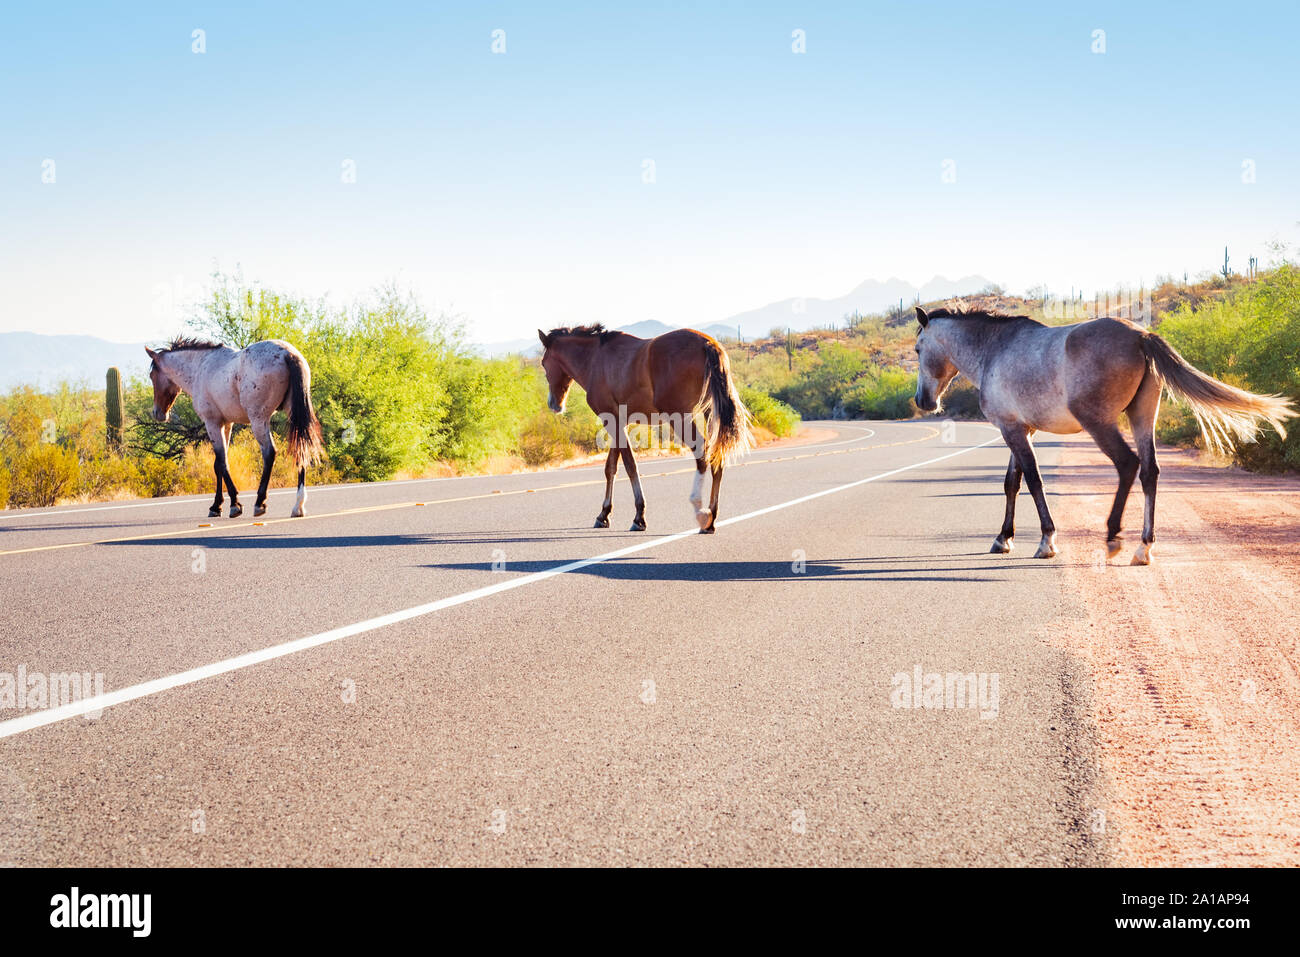 Salt River wild horses crossing the road in the Lower Salt River recreation area of Tonto National Forest, Arizona. Stock Photo